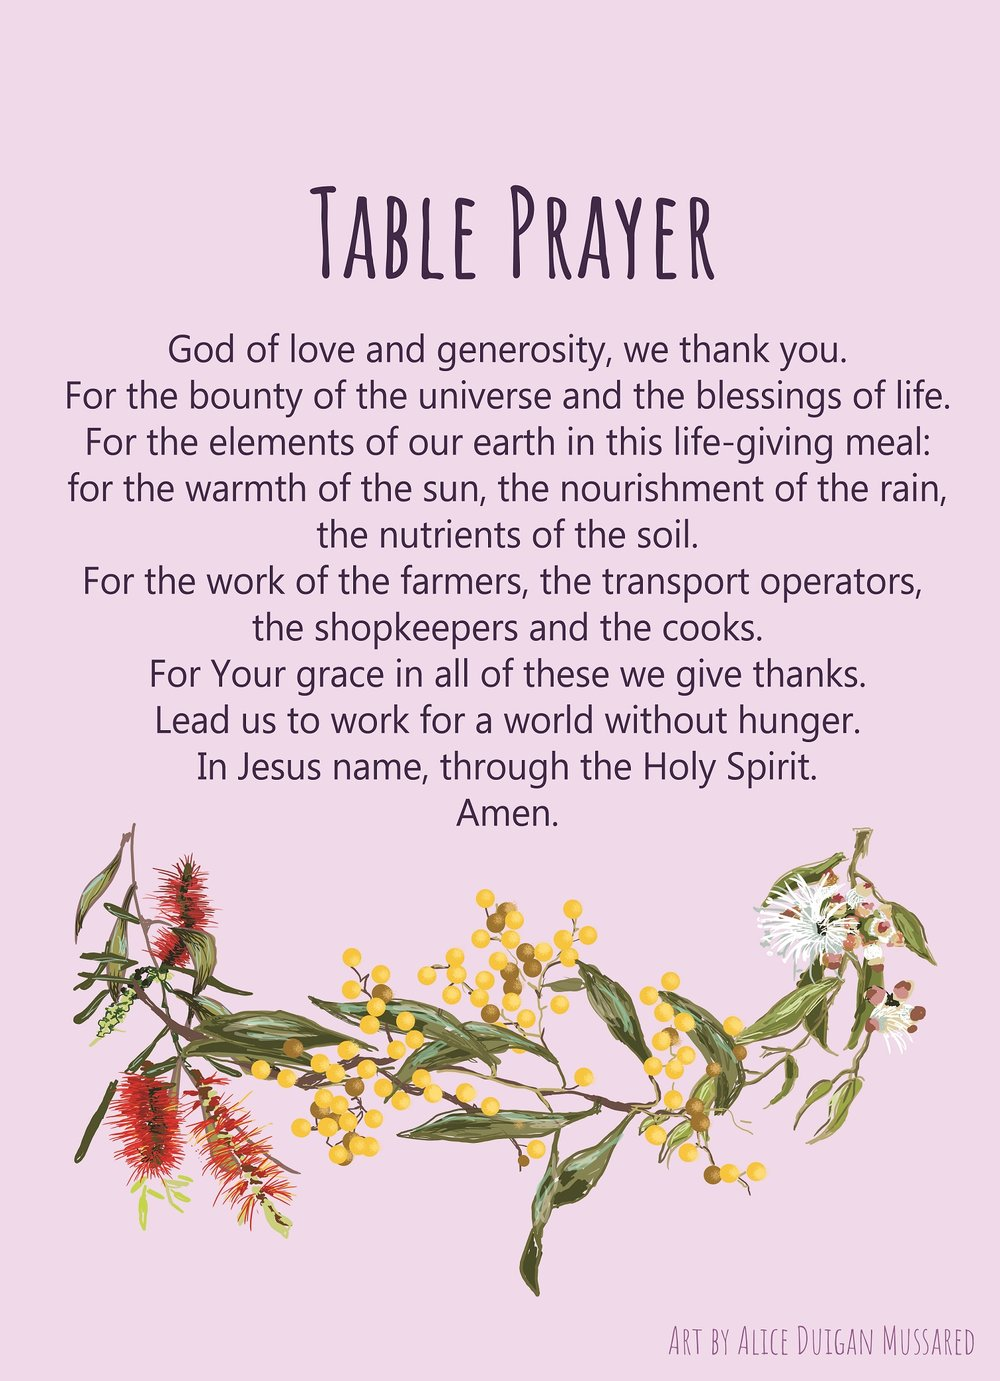 Table Prayer side_13July2017.jpg